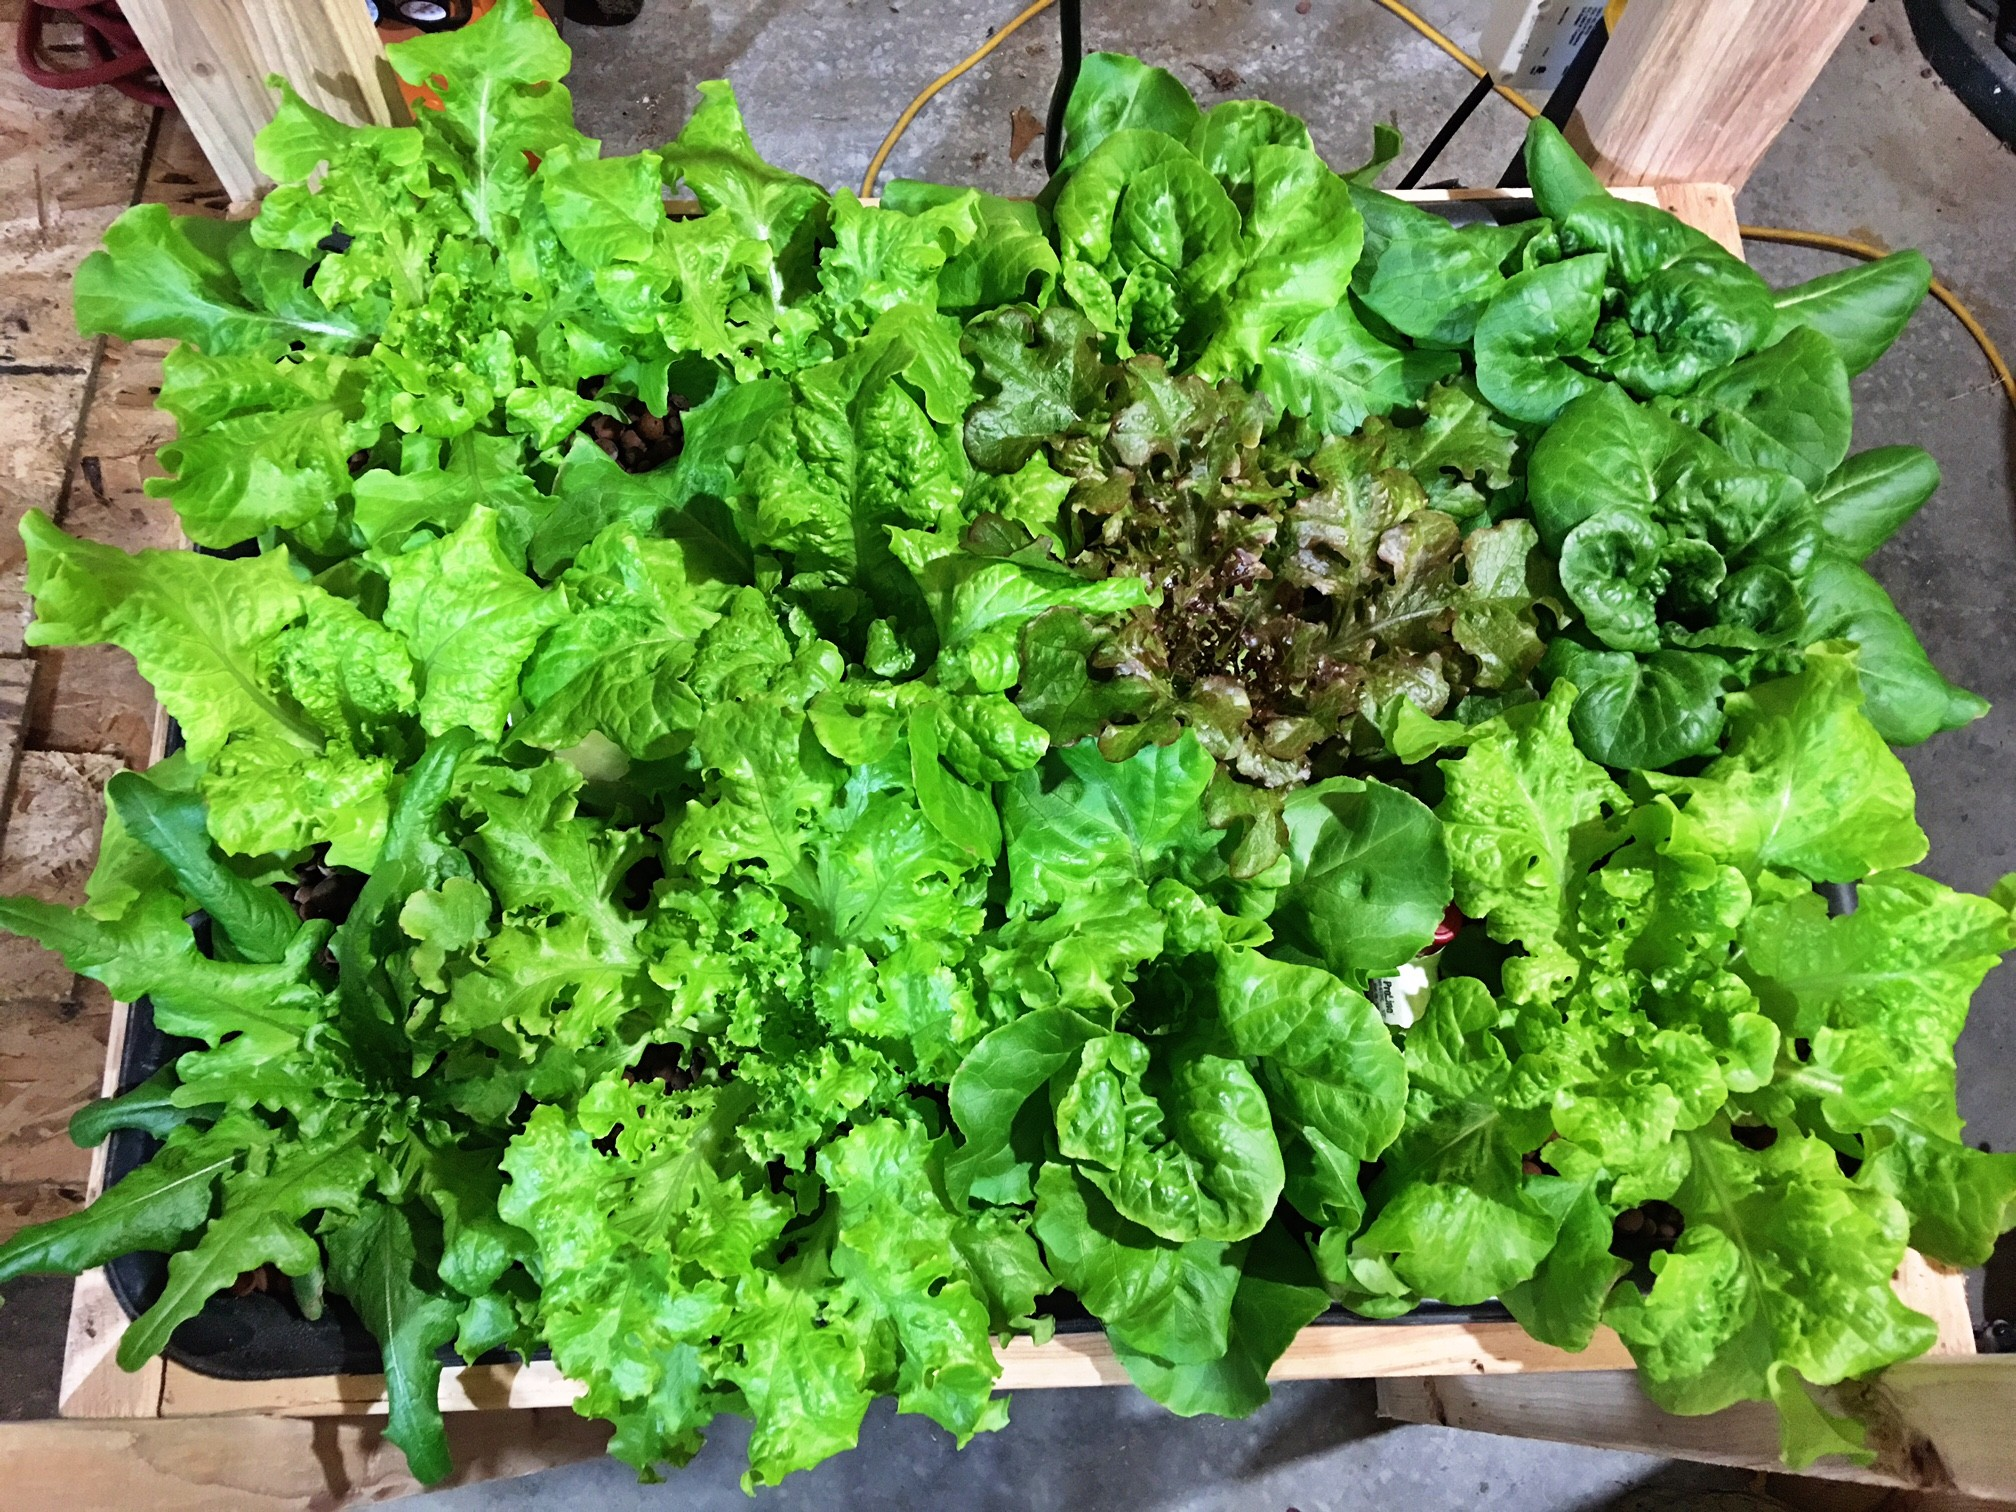 How To Grow Hydroponic Lettuce Nosoilsolutions